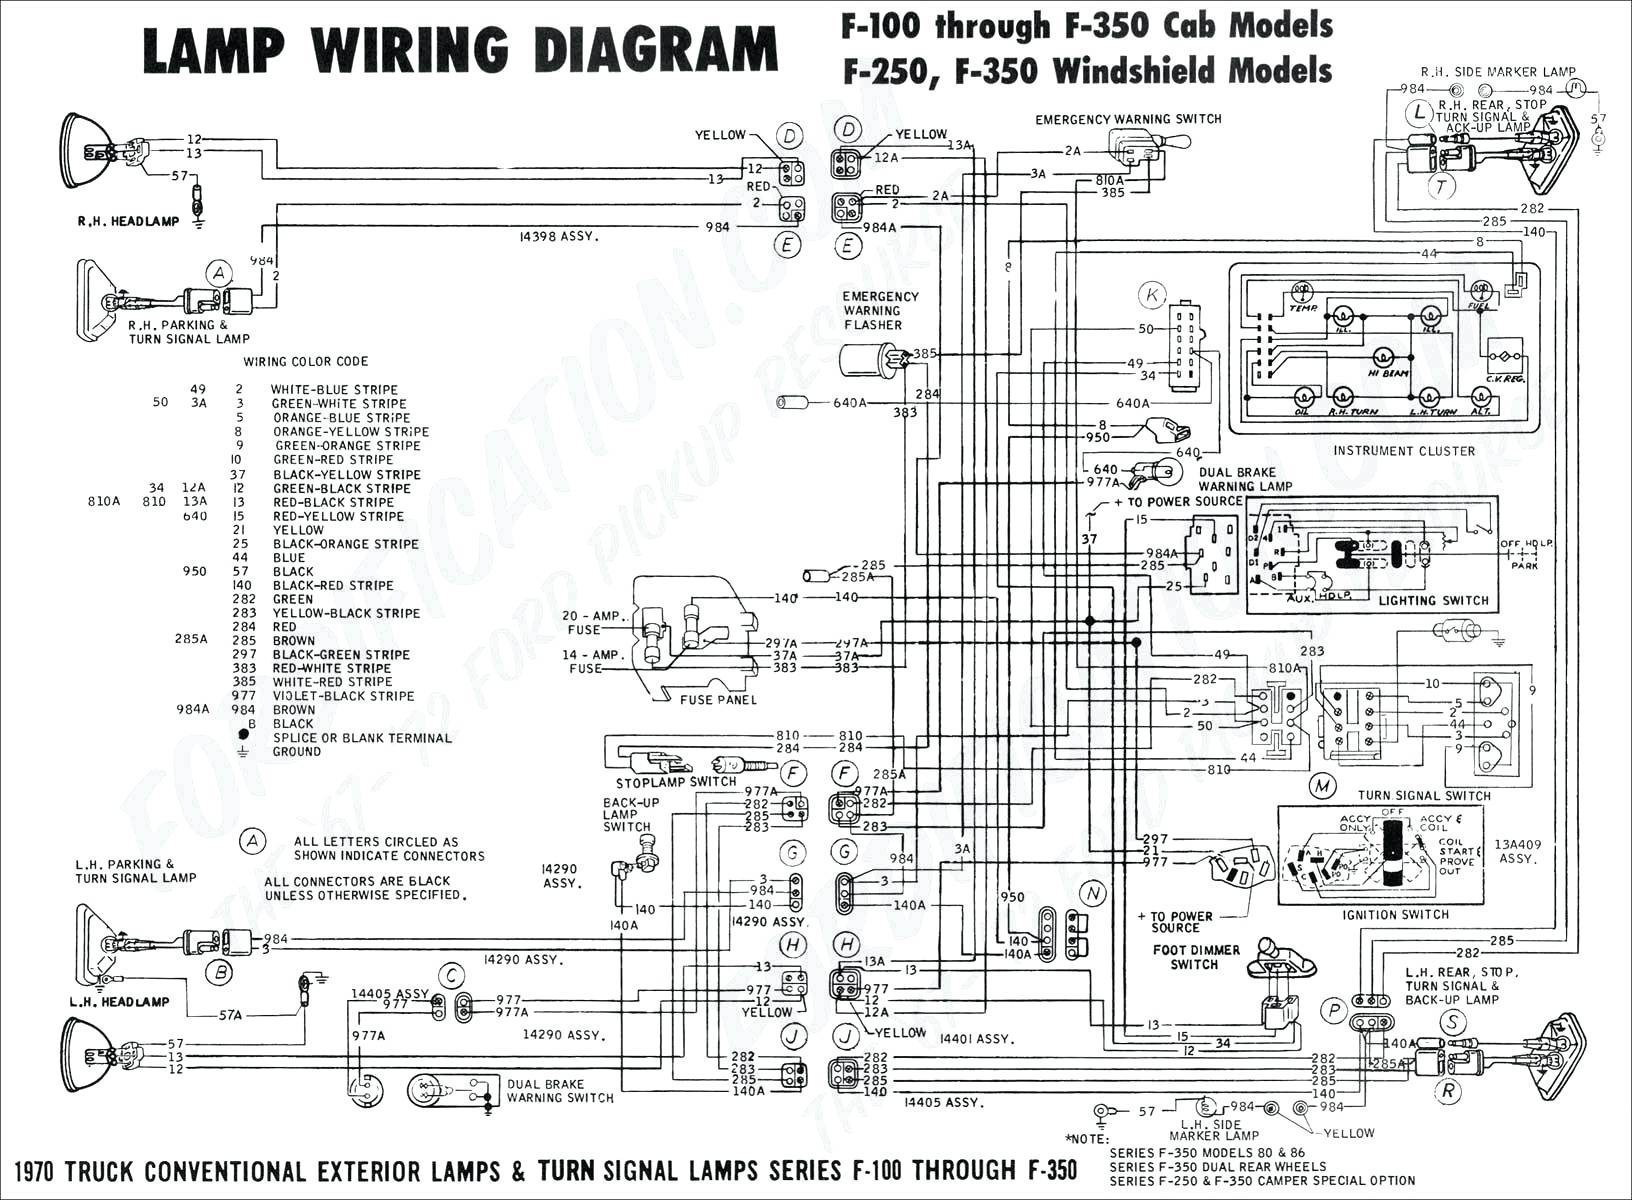 1998 isuzu Rodeo Engine Diagram Fresh How to Wire A Fuel Pump Relay Diagram • Electrical Outlet Of 1998 isuzu Rodeo Engine Diagram